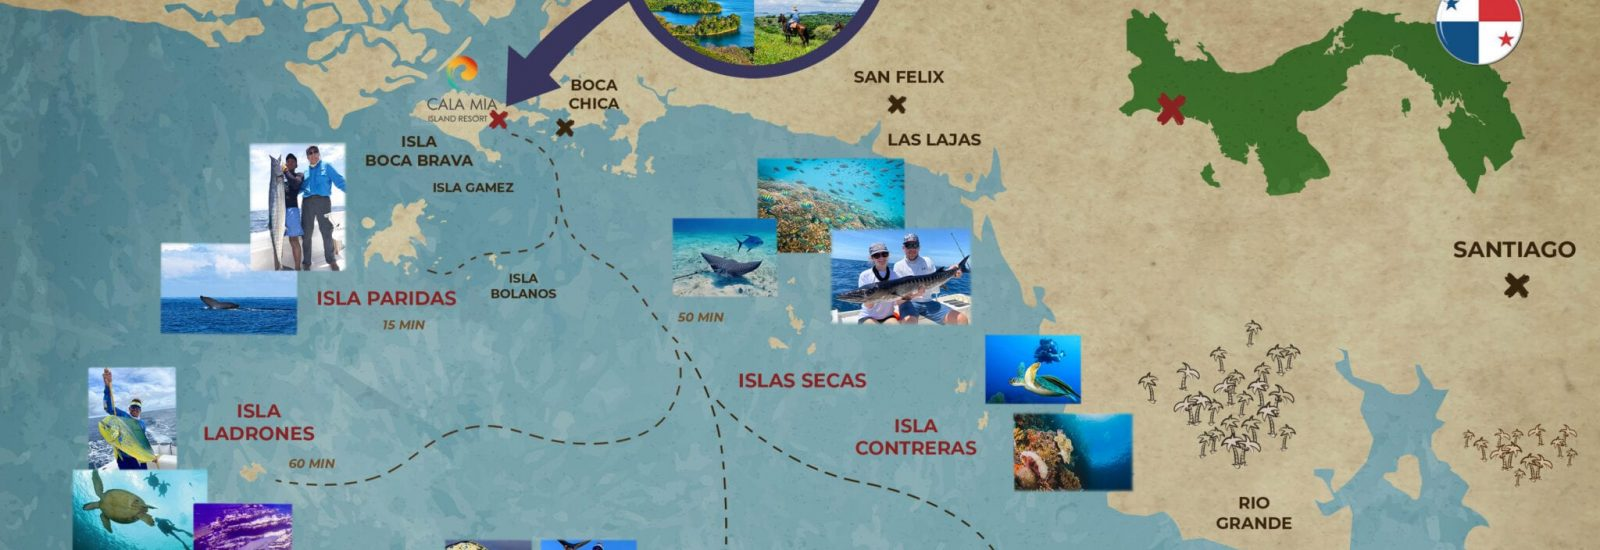 Things to do in Panama Map- Aquatic Activity Map